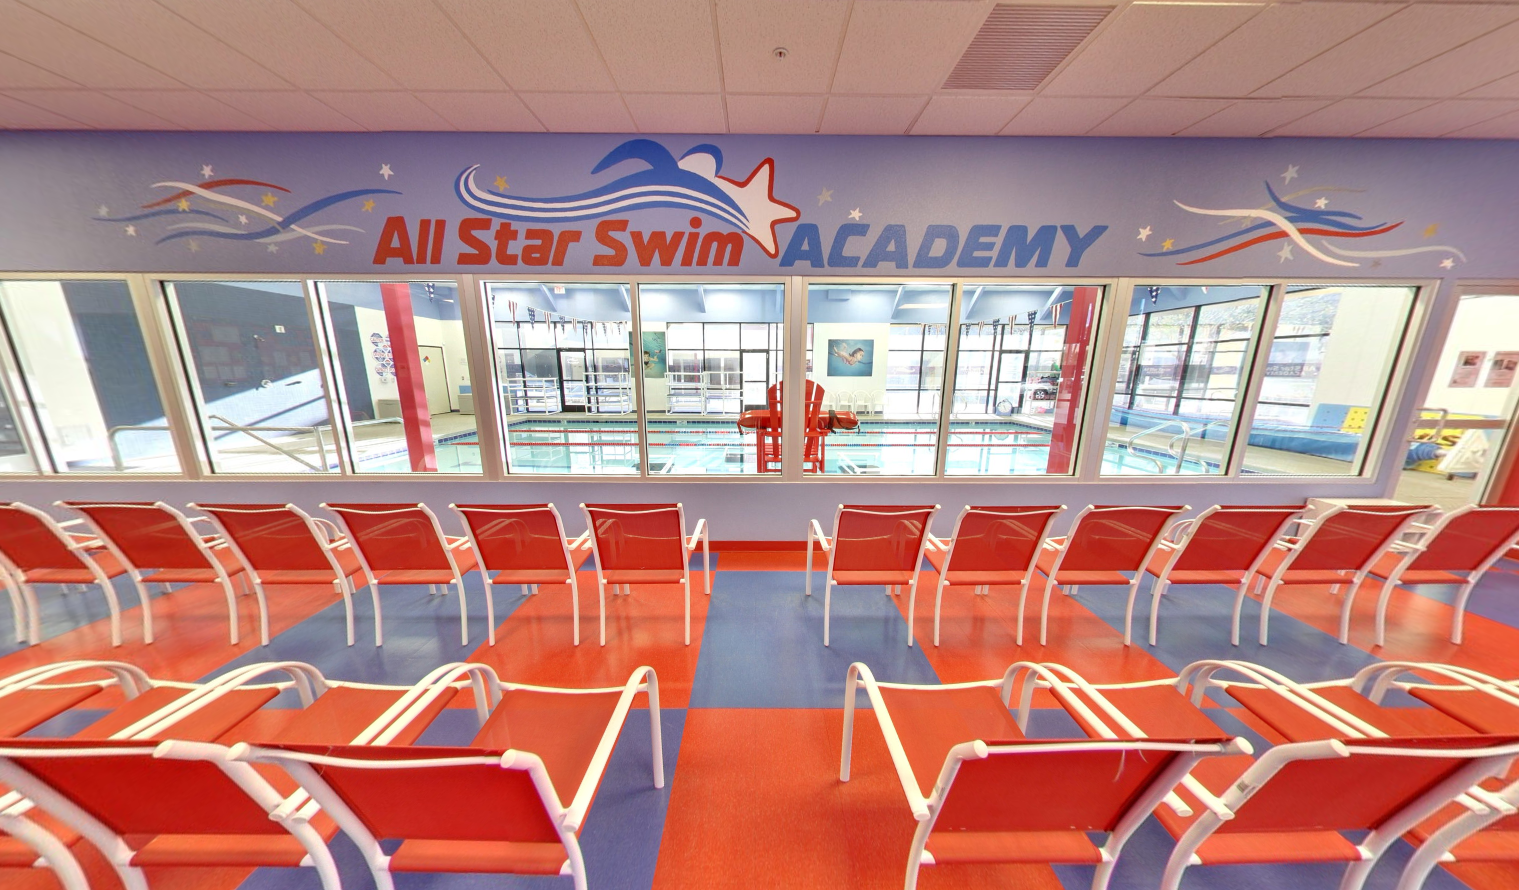 Viewing area of All Star Swim Academy in Las Vegas facing the swimming pool